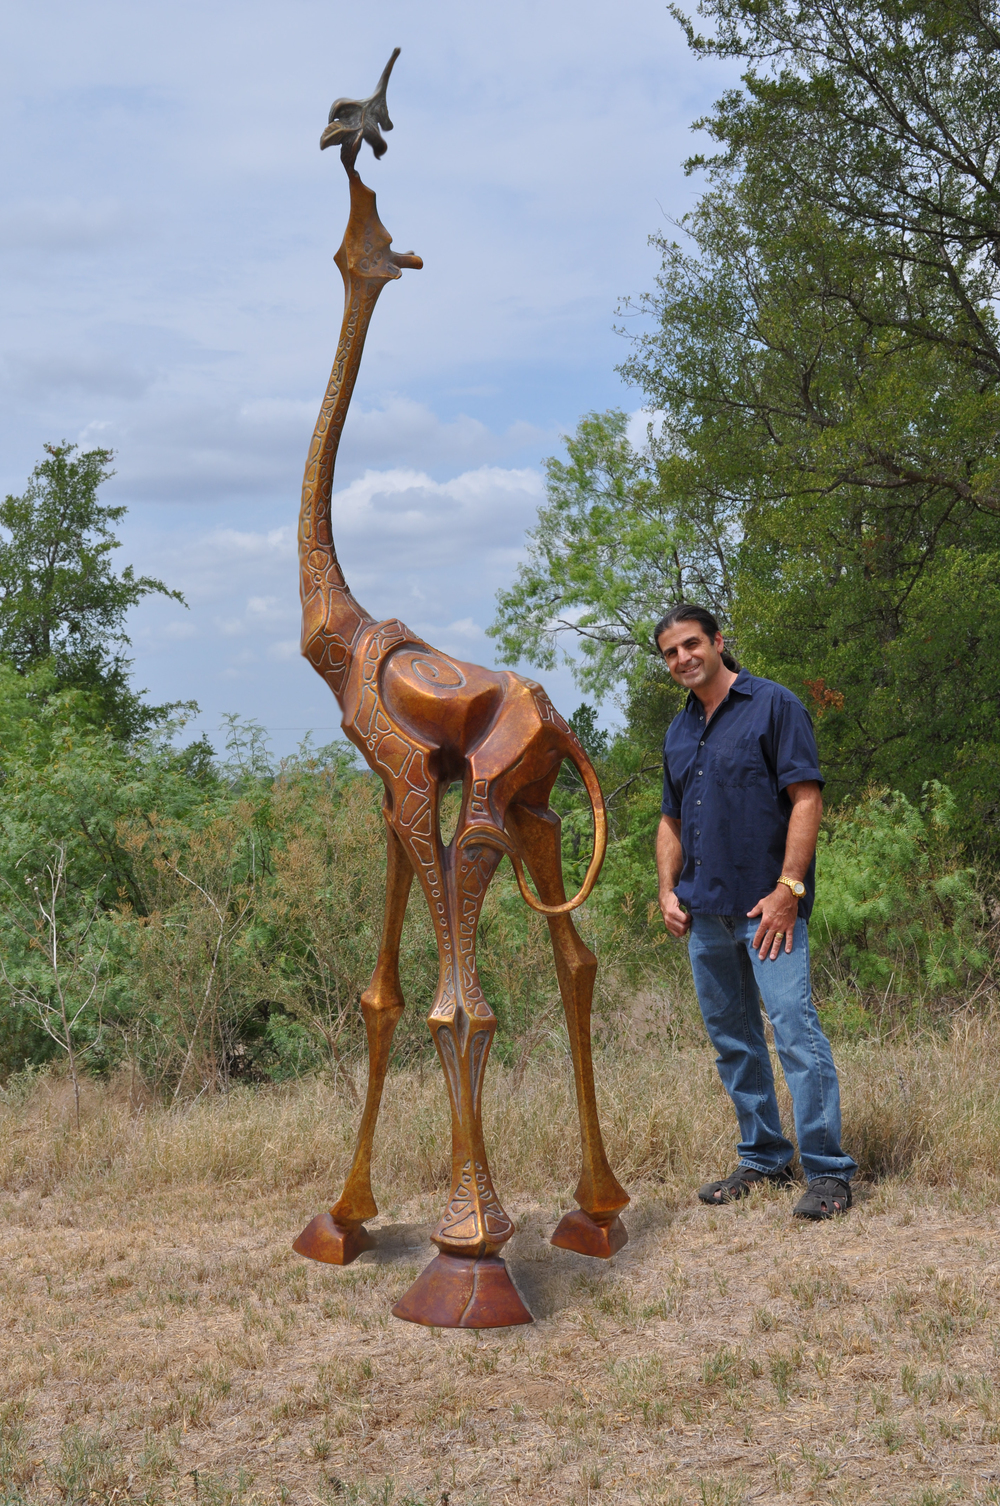 Giraffe Bronze Sculpture Monument by John Maisano